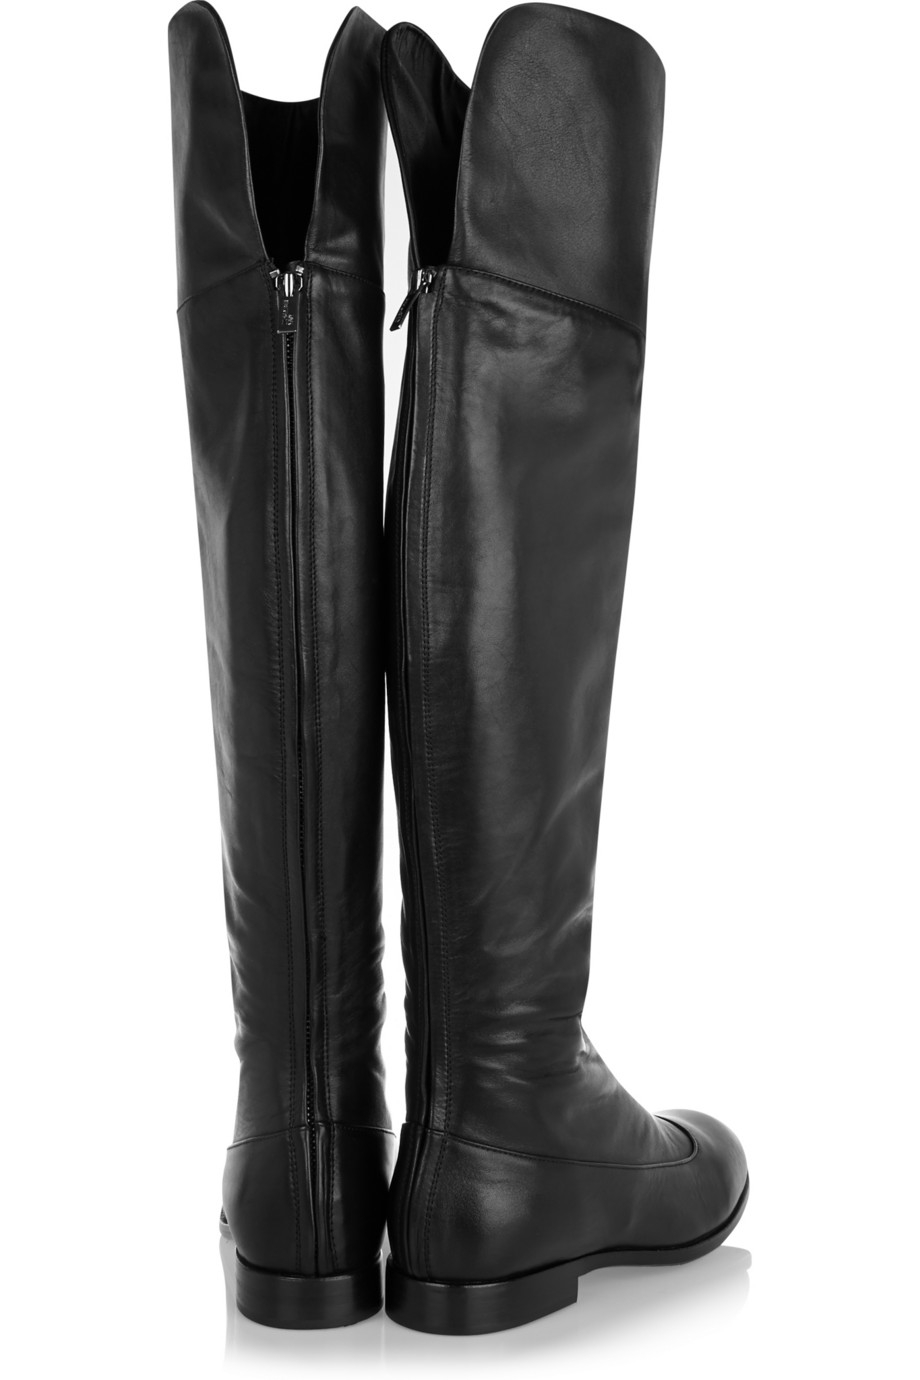 Black Leather Over The Knee Boots - Cr Boot